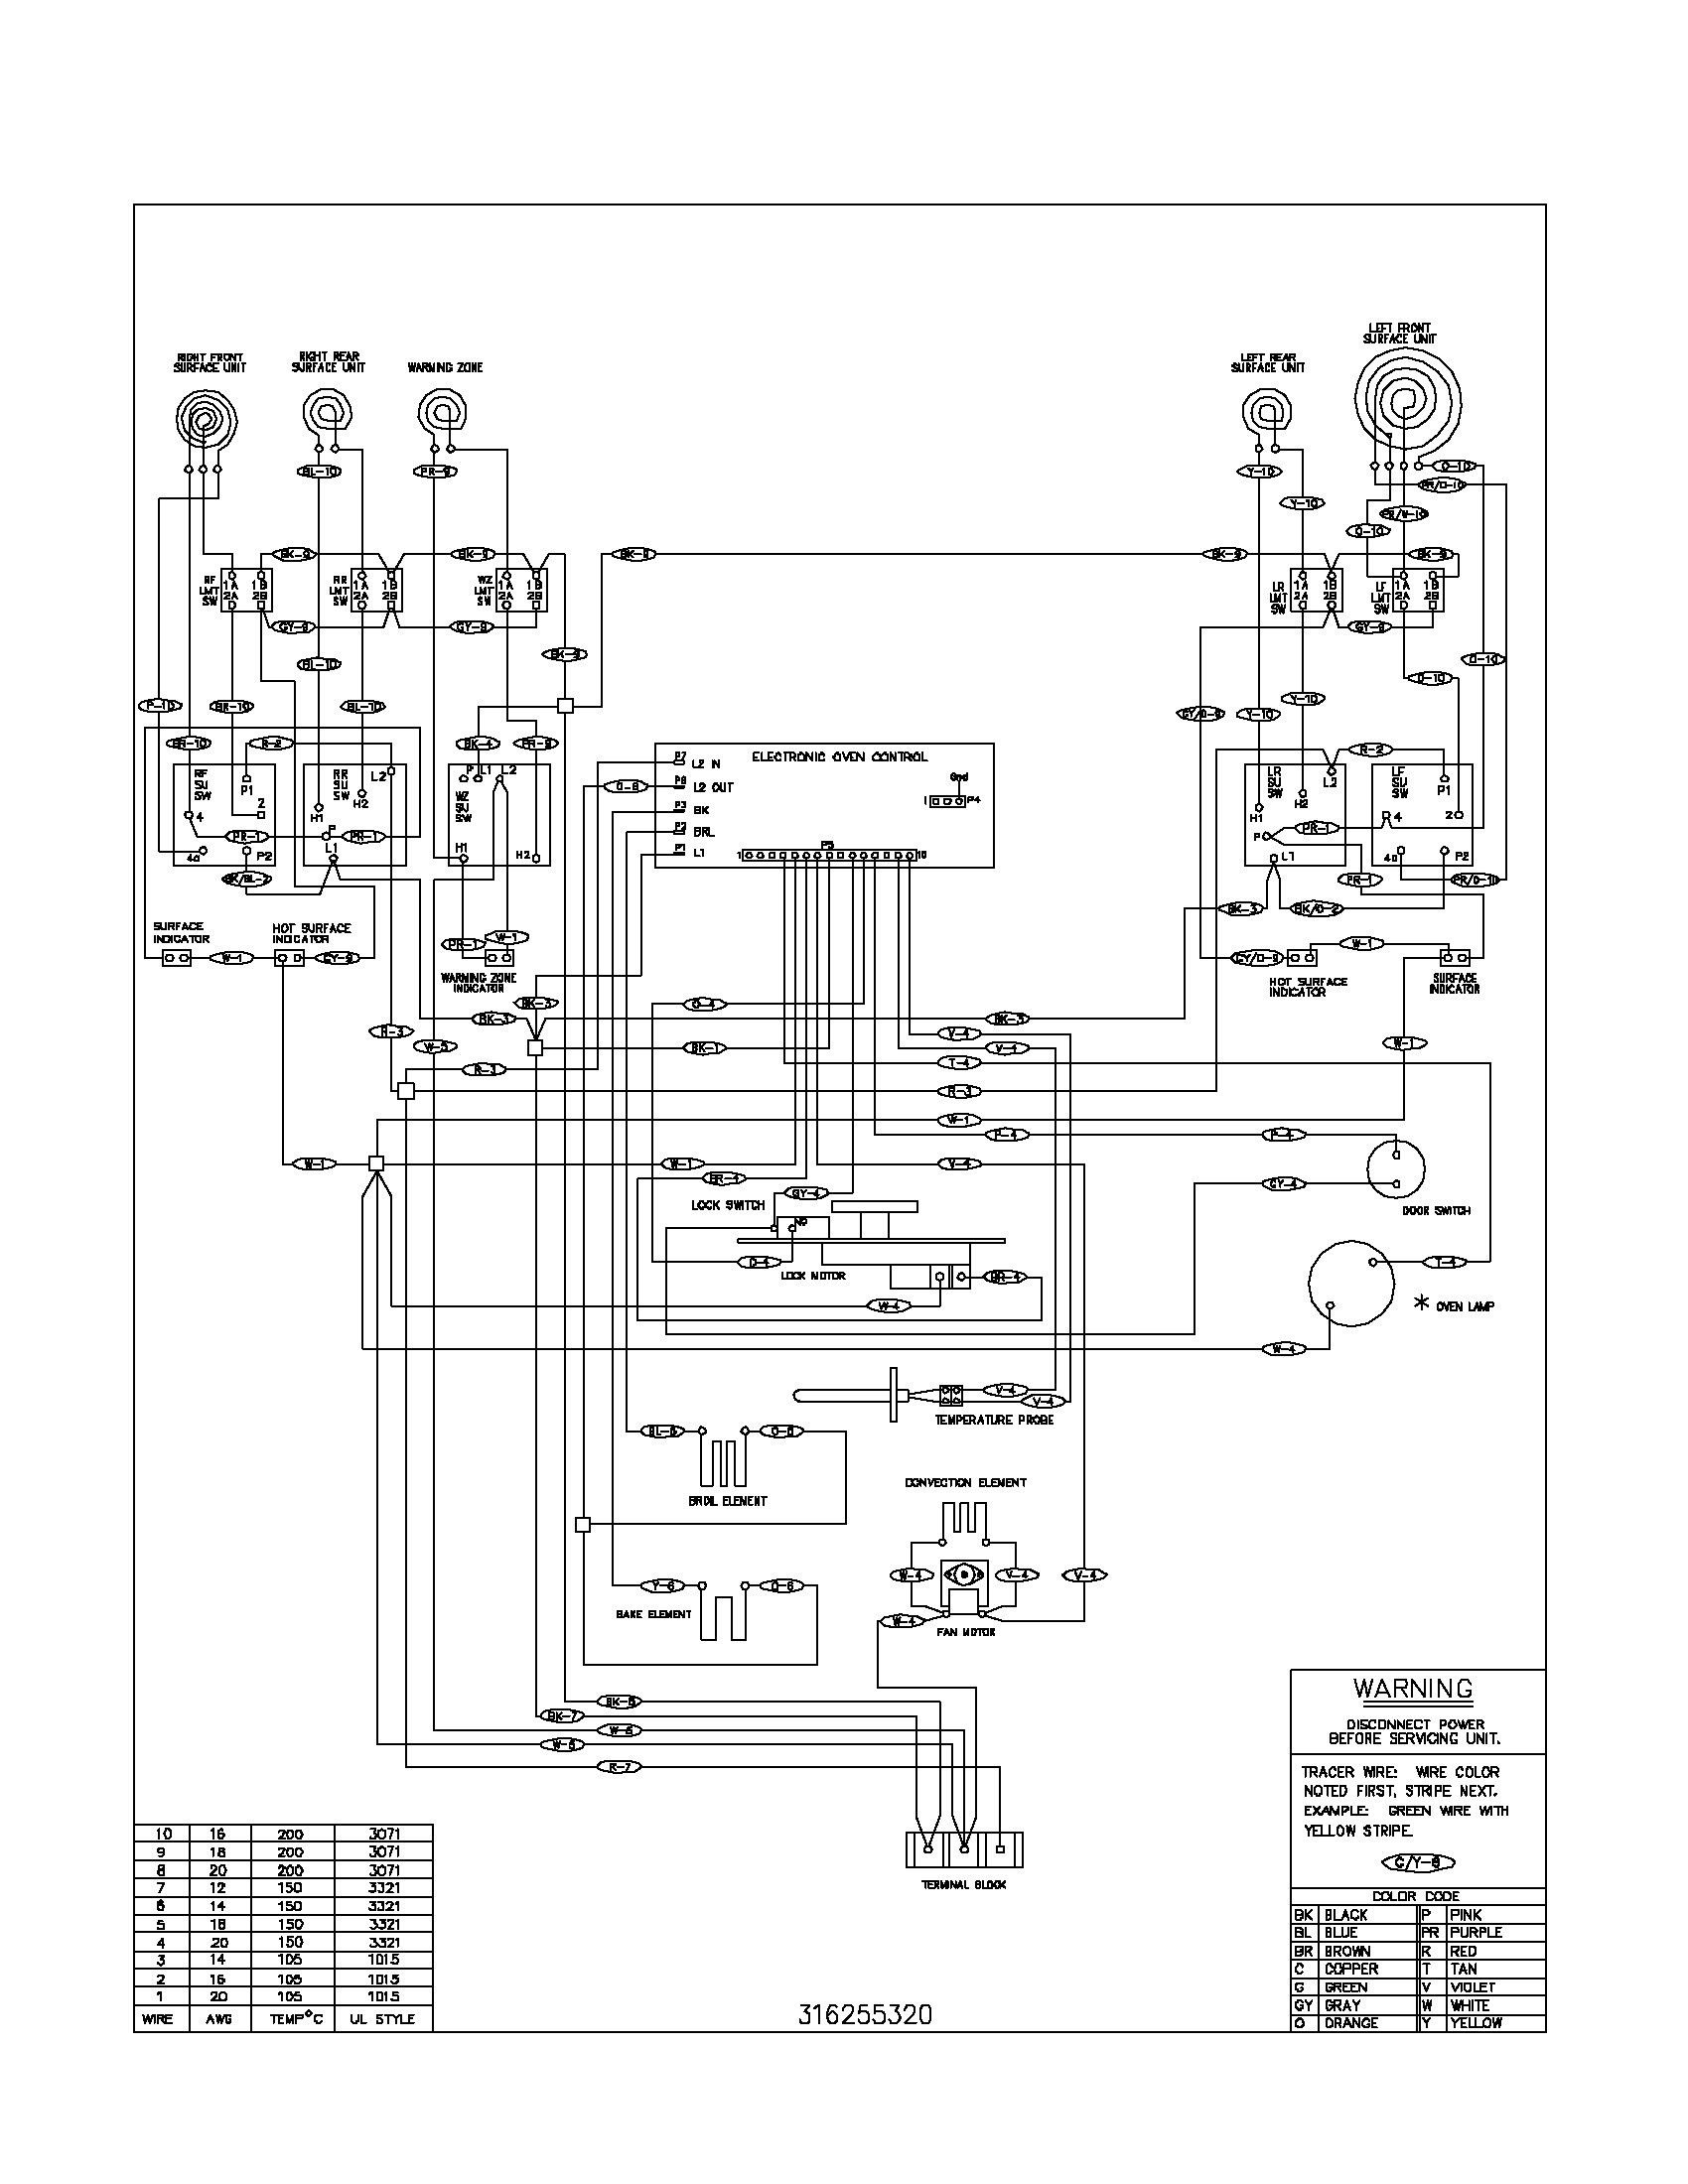 24 Wiring Diagram For Electric Stove Bookingritzcarlton Info Electric Stove Electrical Diagram Electric Oven